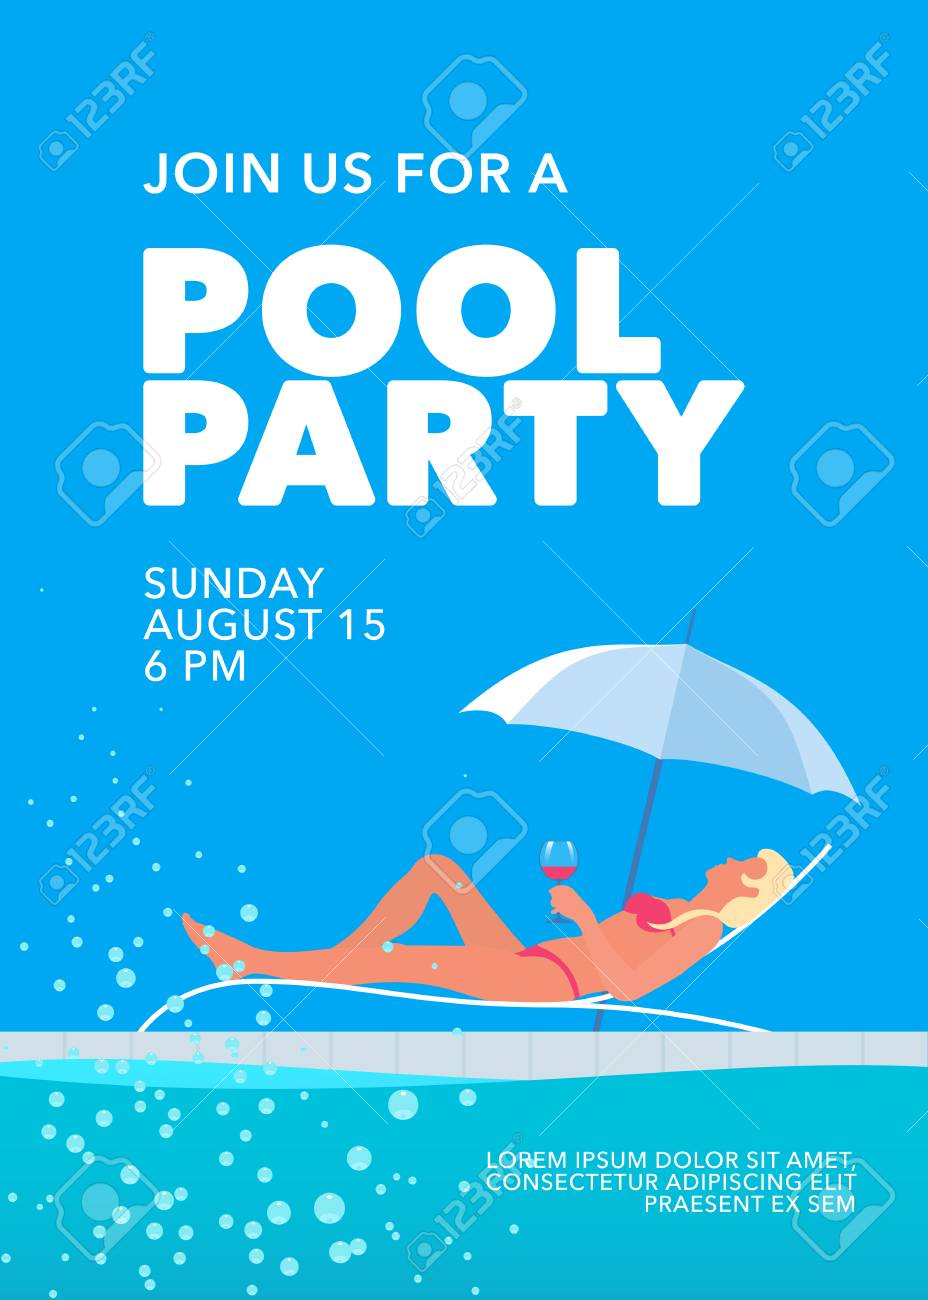 Pool Party Poster With Girl Under Umbrella And Swimming Pool